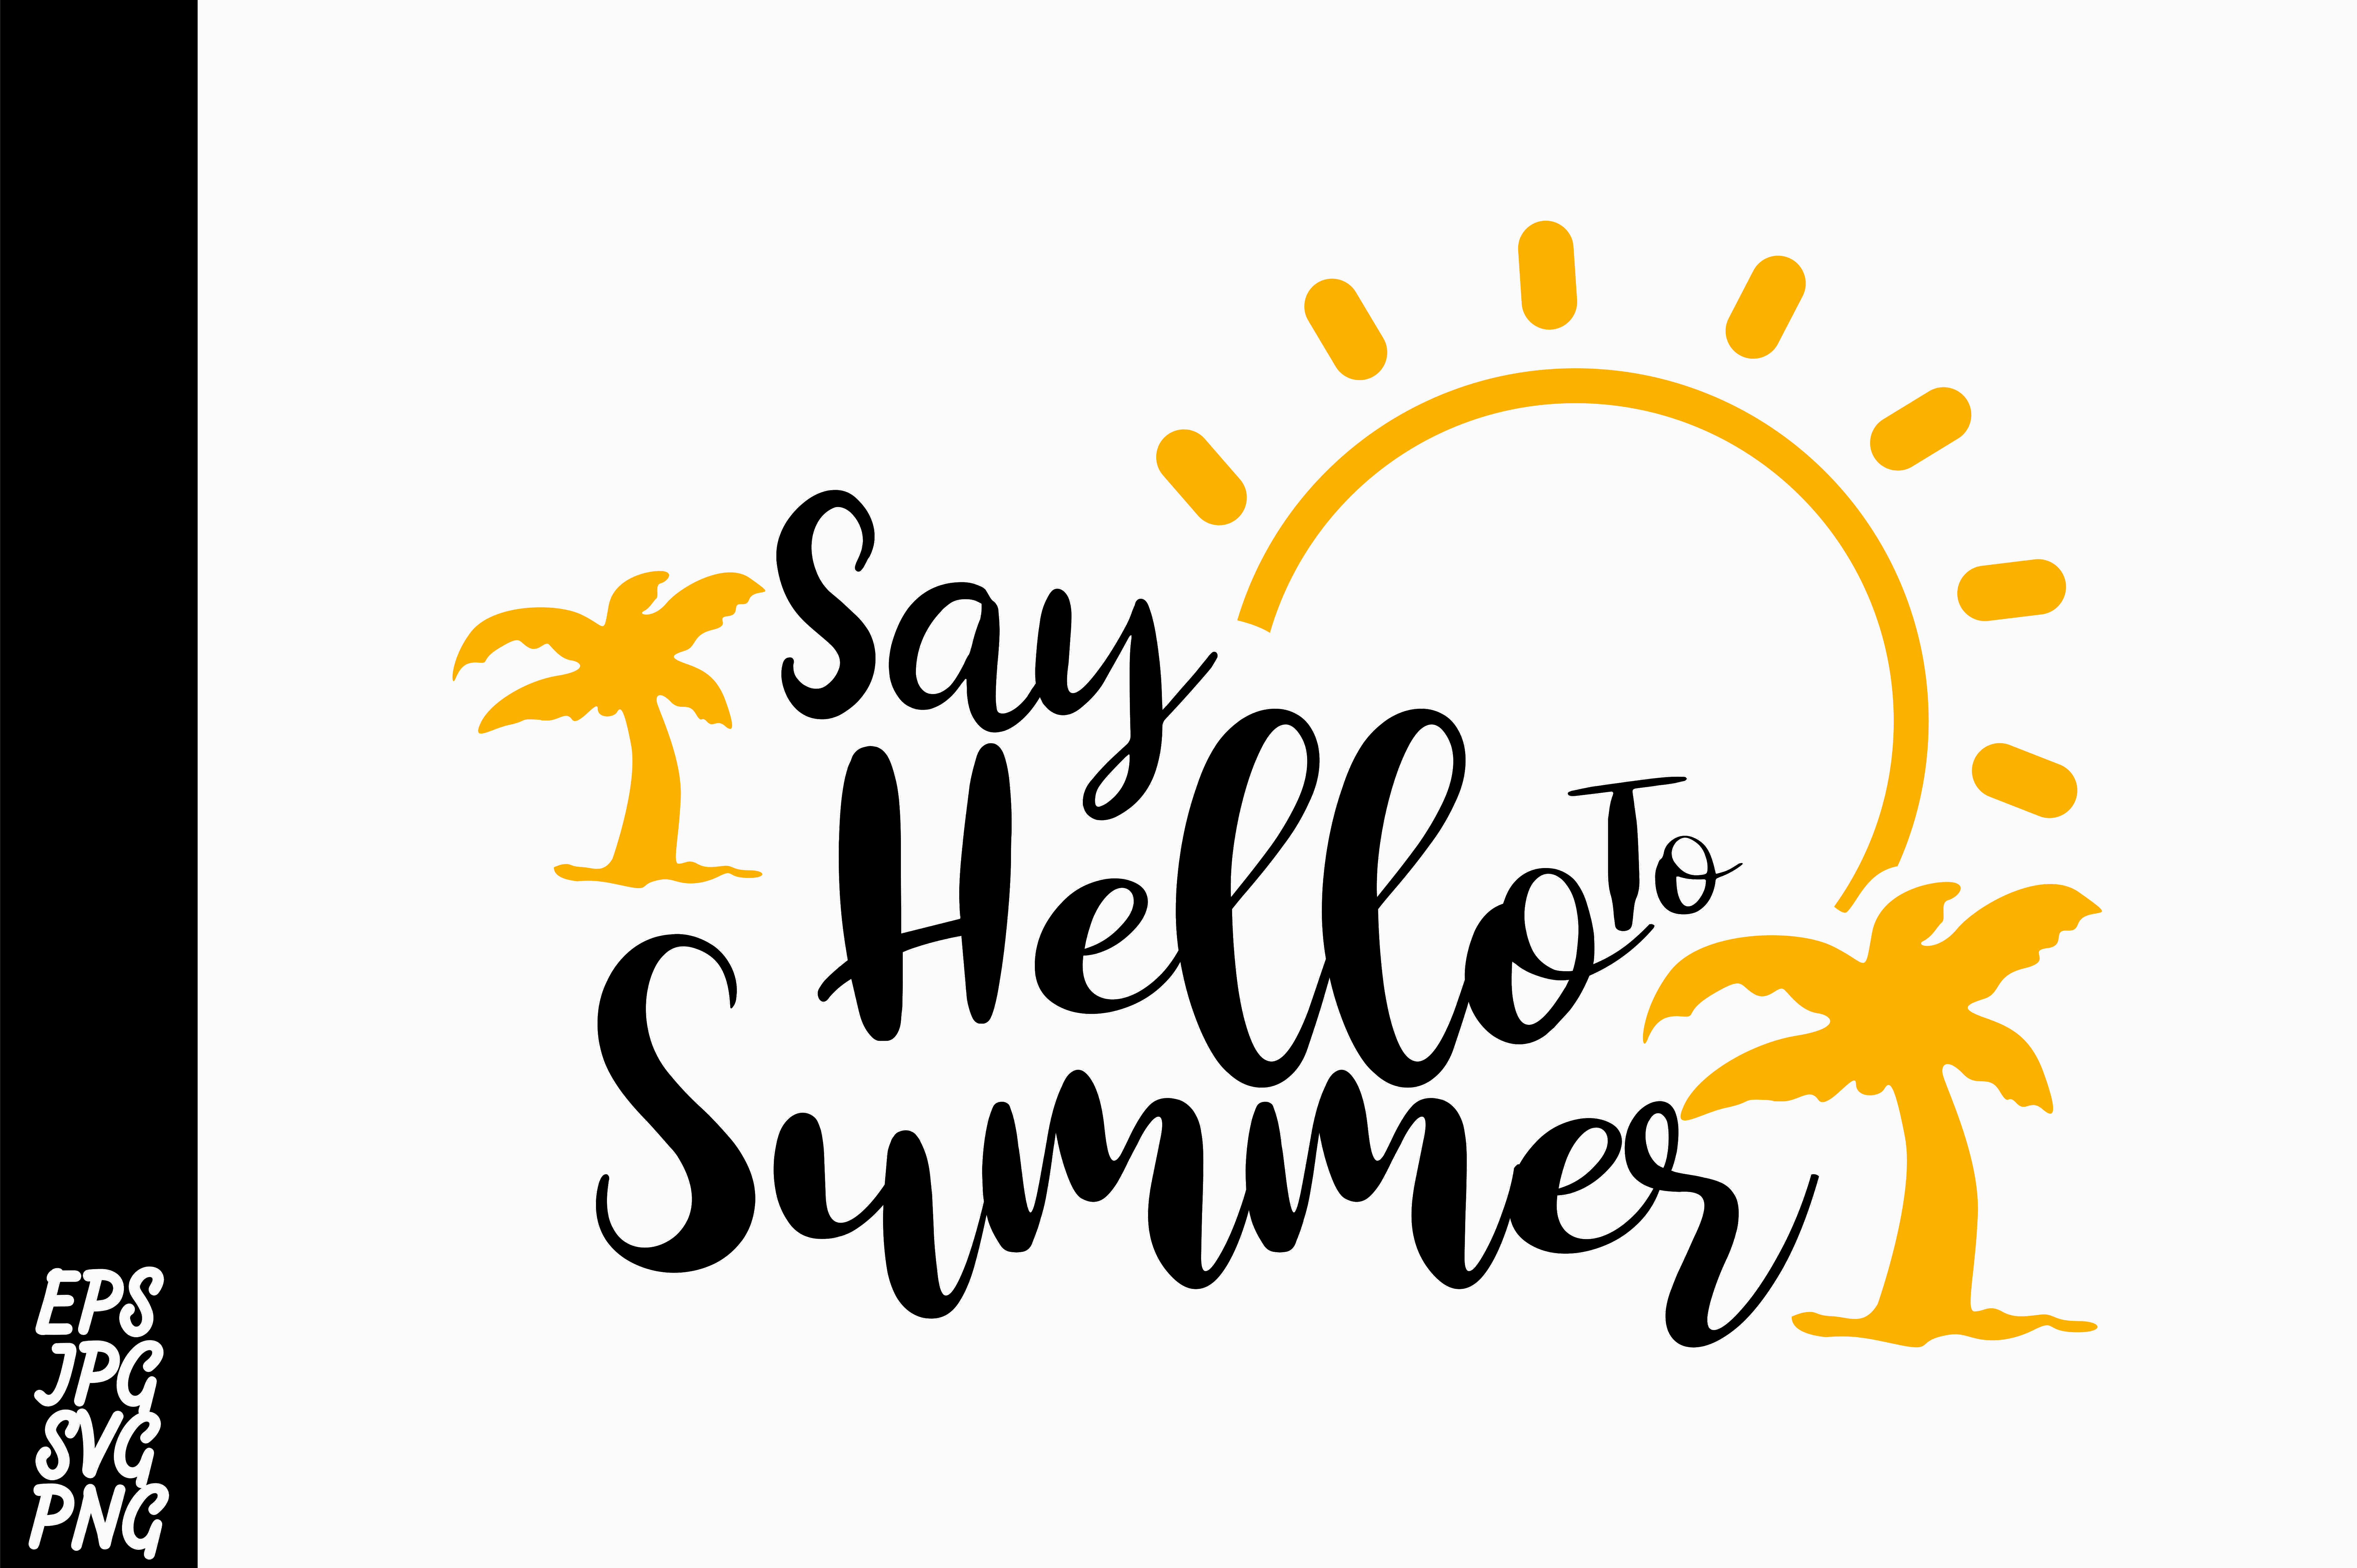 Download Free Say Hello To Summer Graphic By Arsa Adjie Creative Fabrica for Cricut Explore, Silhouette and other cutting machines.